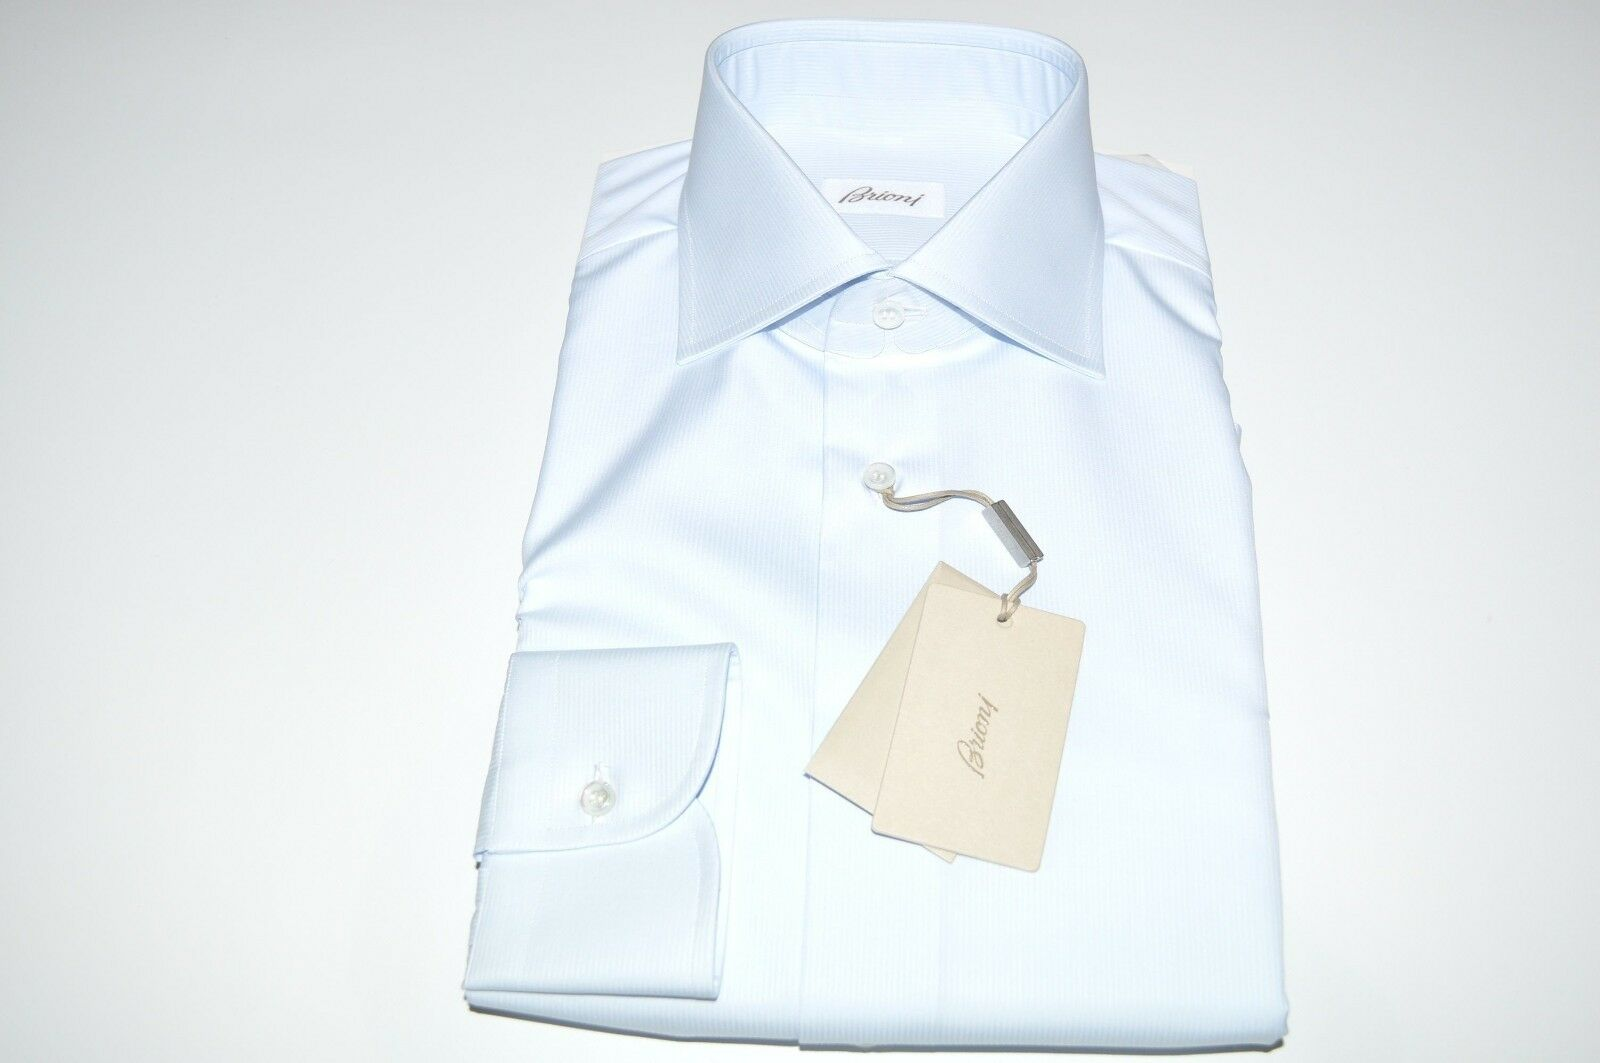 NEW  BRIONI Dress SHIRT 100% Cotton Size 17.5 Us 44 Eu bluee (Store Code MA21)